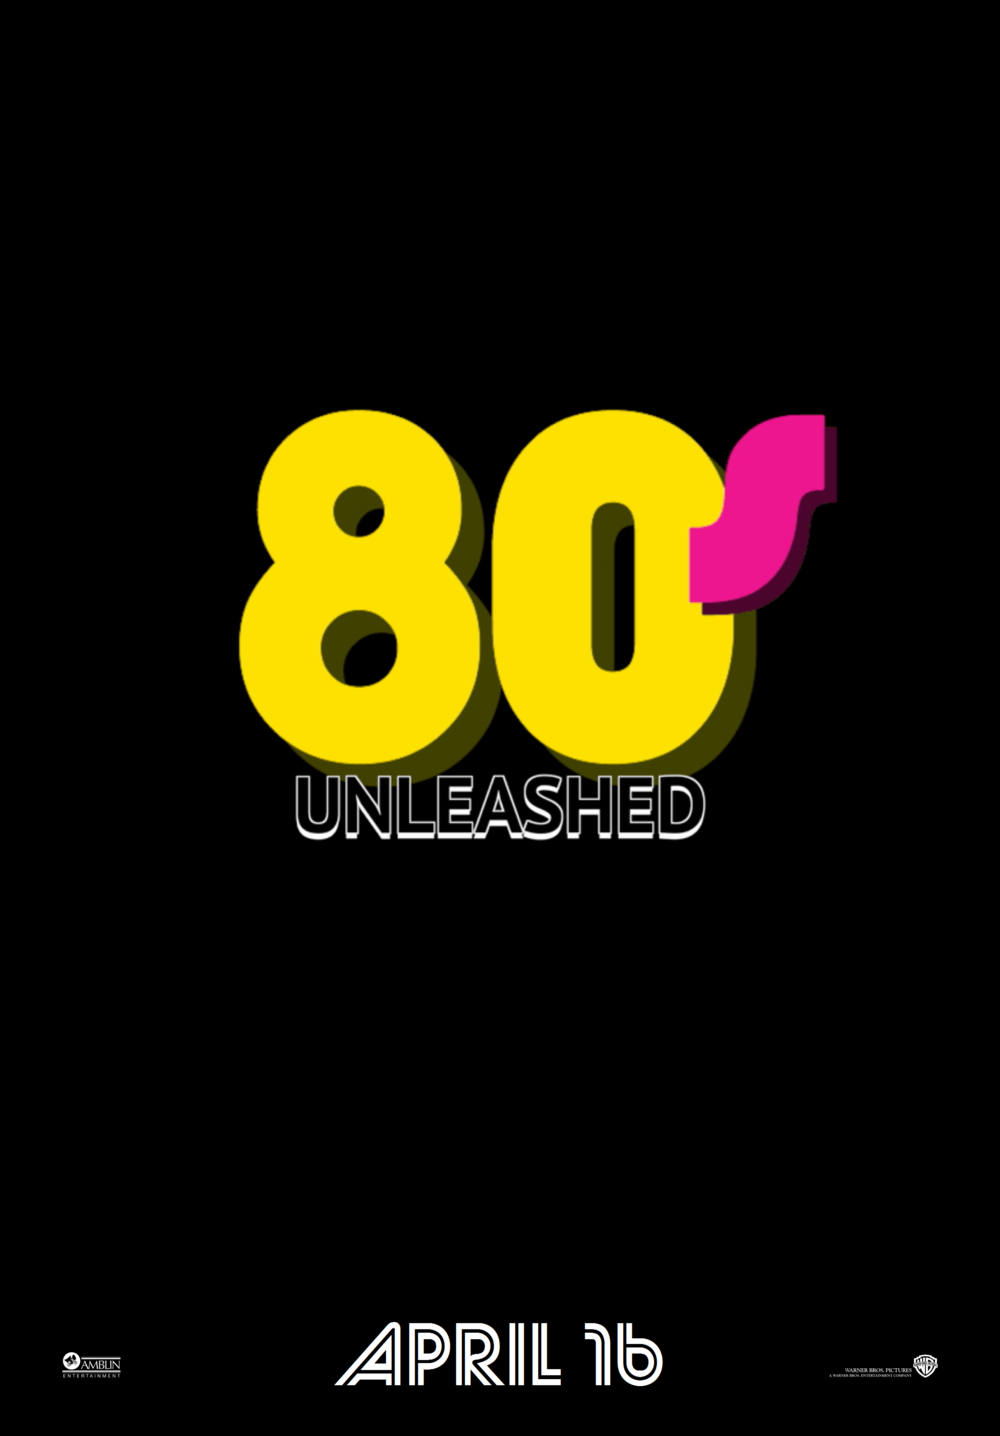 80's Unleashed